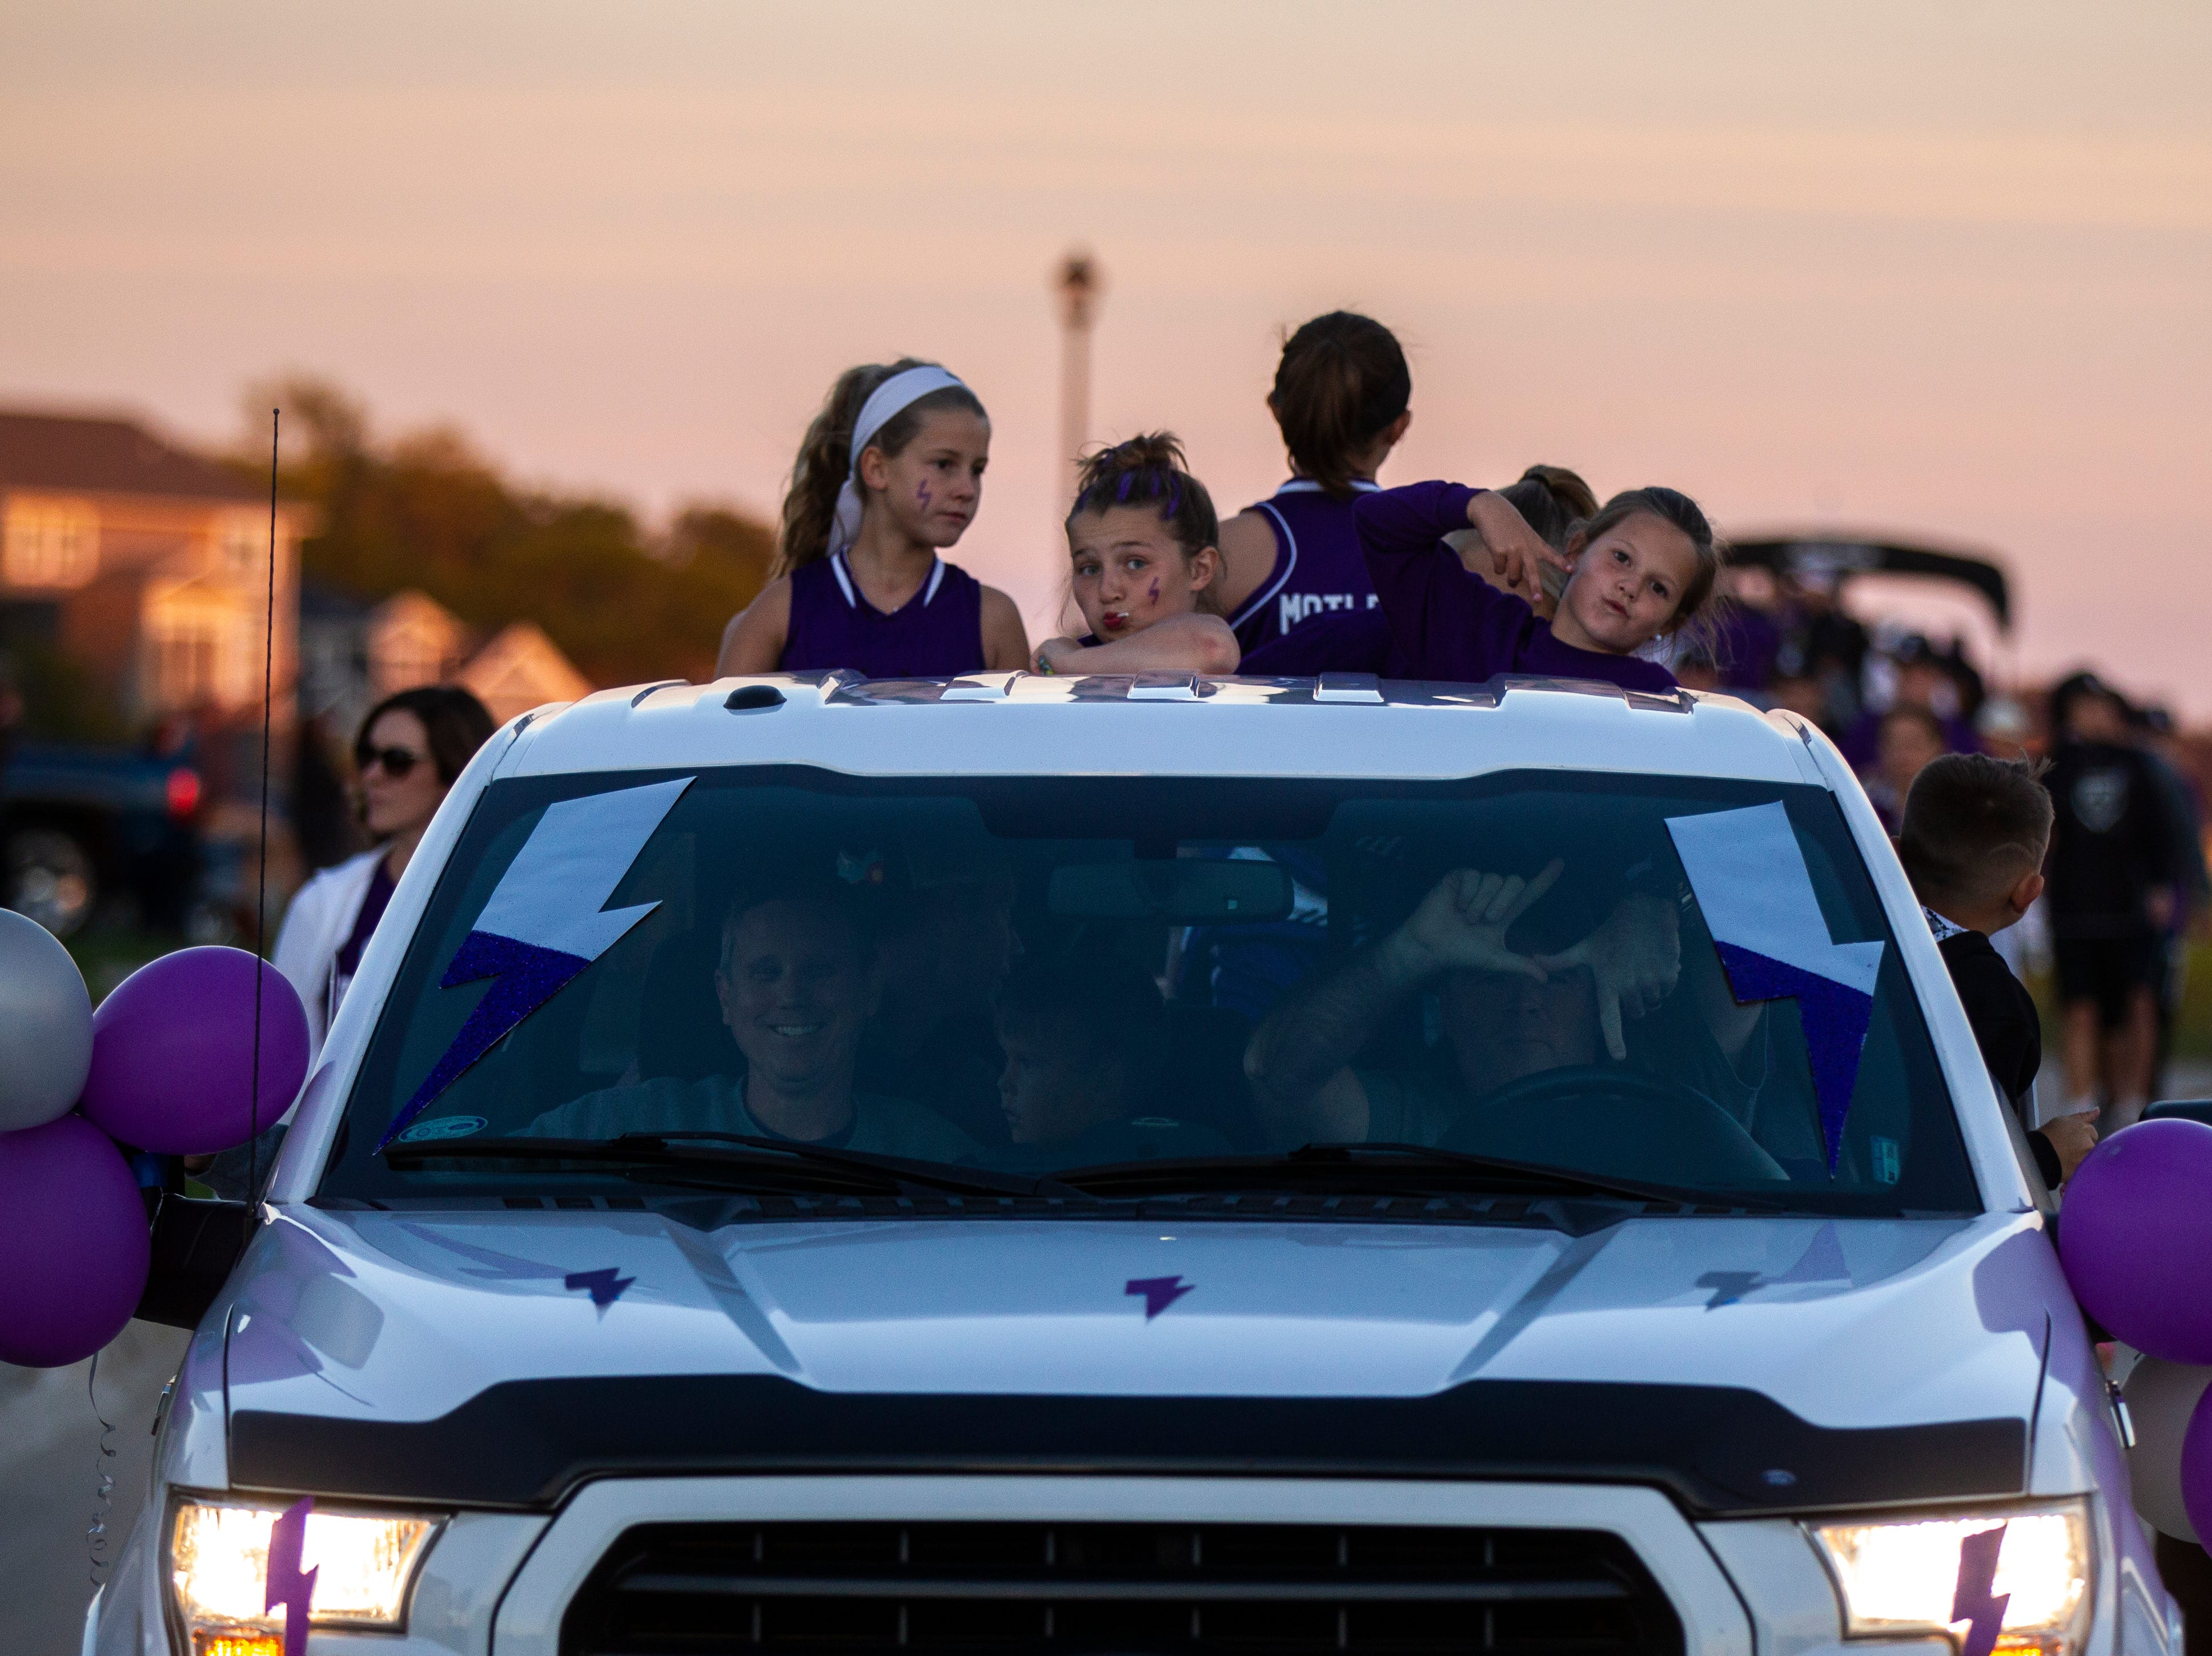 Parade participants pose during Liberty's homecoming parade on Wednesday, Sept. 26, 2018, in North Liberty, Iowa.